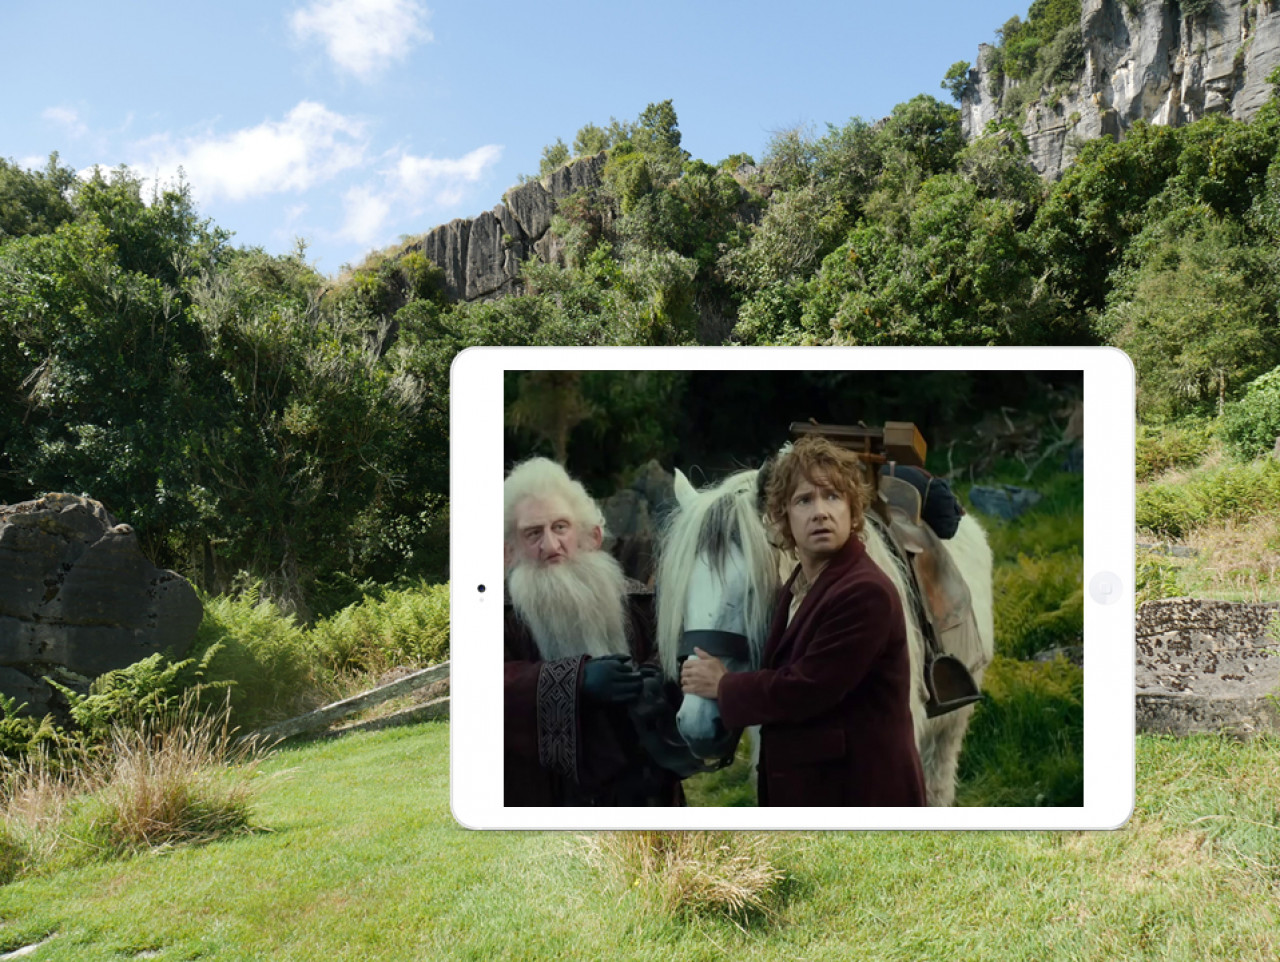 Bilbo, Gandalf and the dwarves arrive at an abandoned farmhouse where they set up camp for the night.